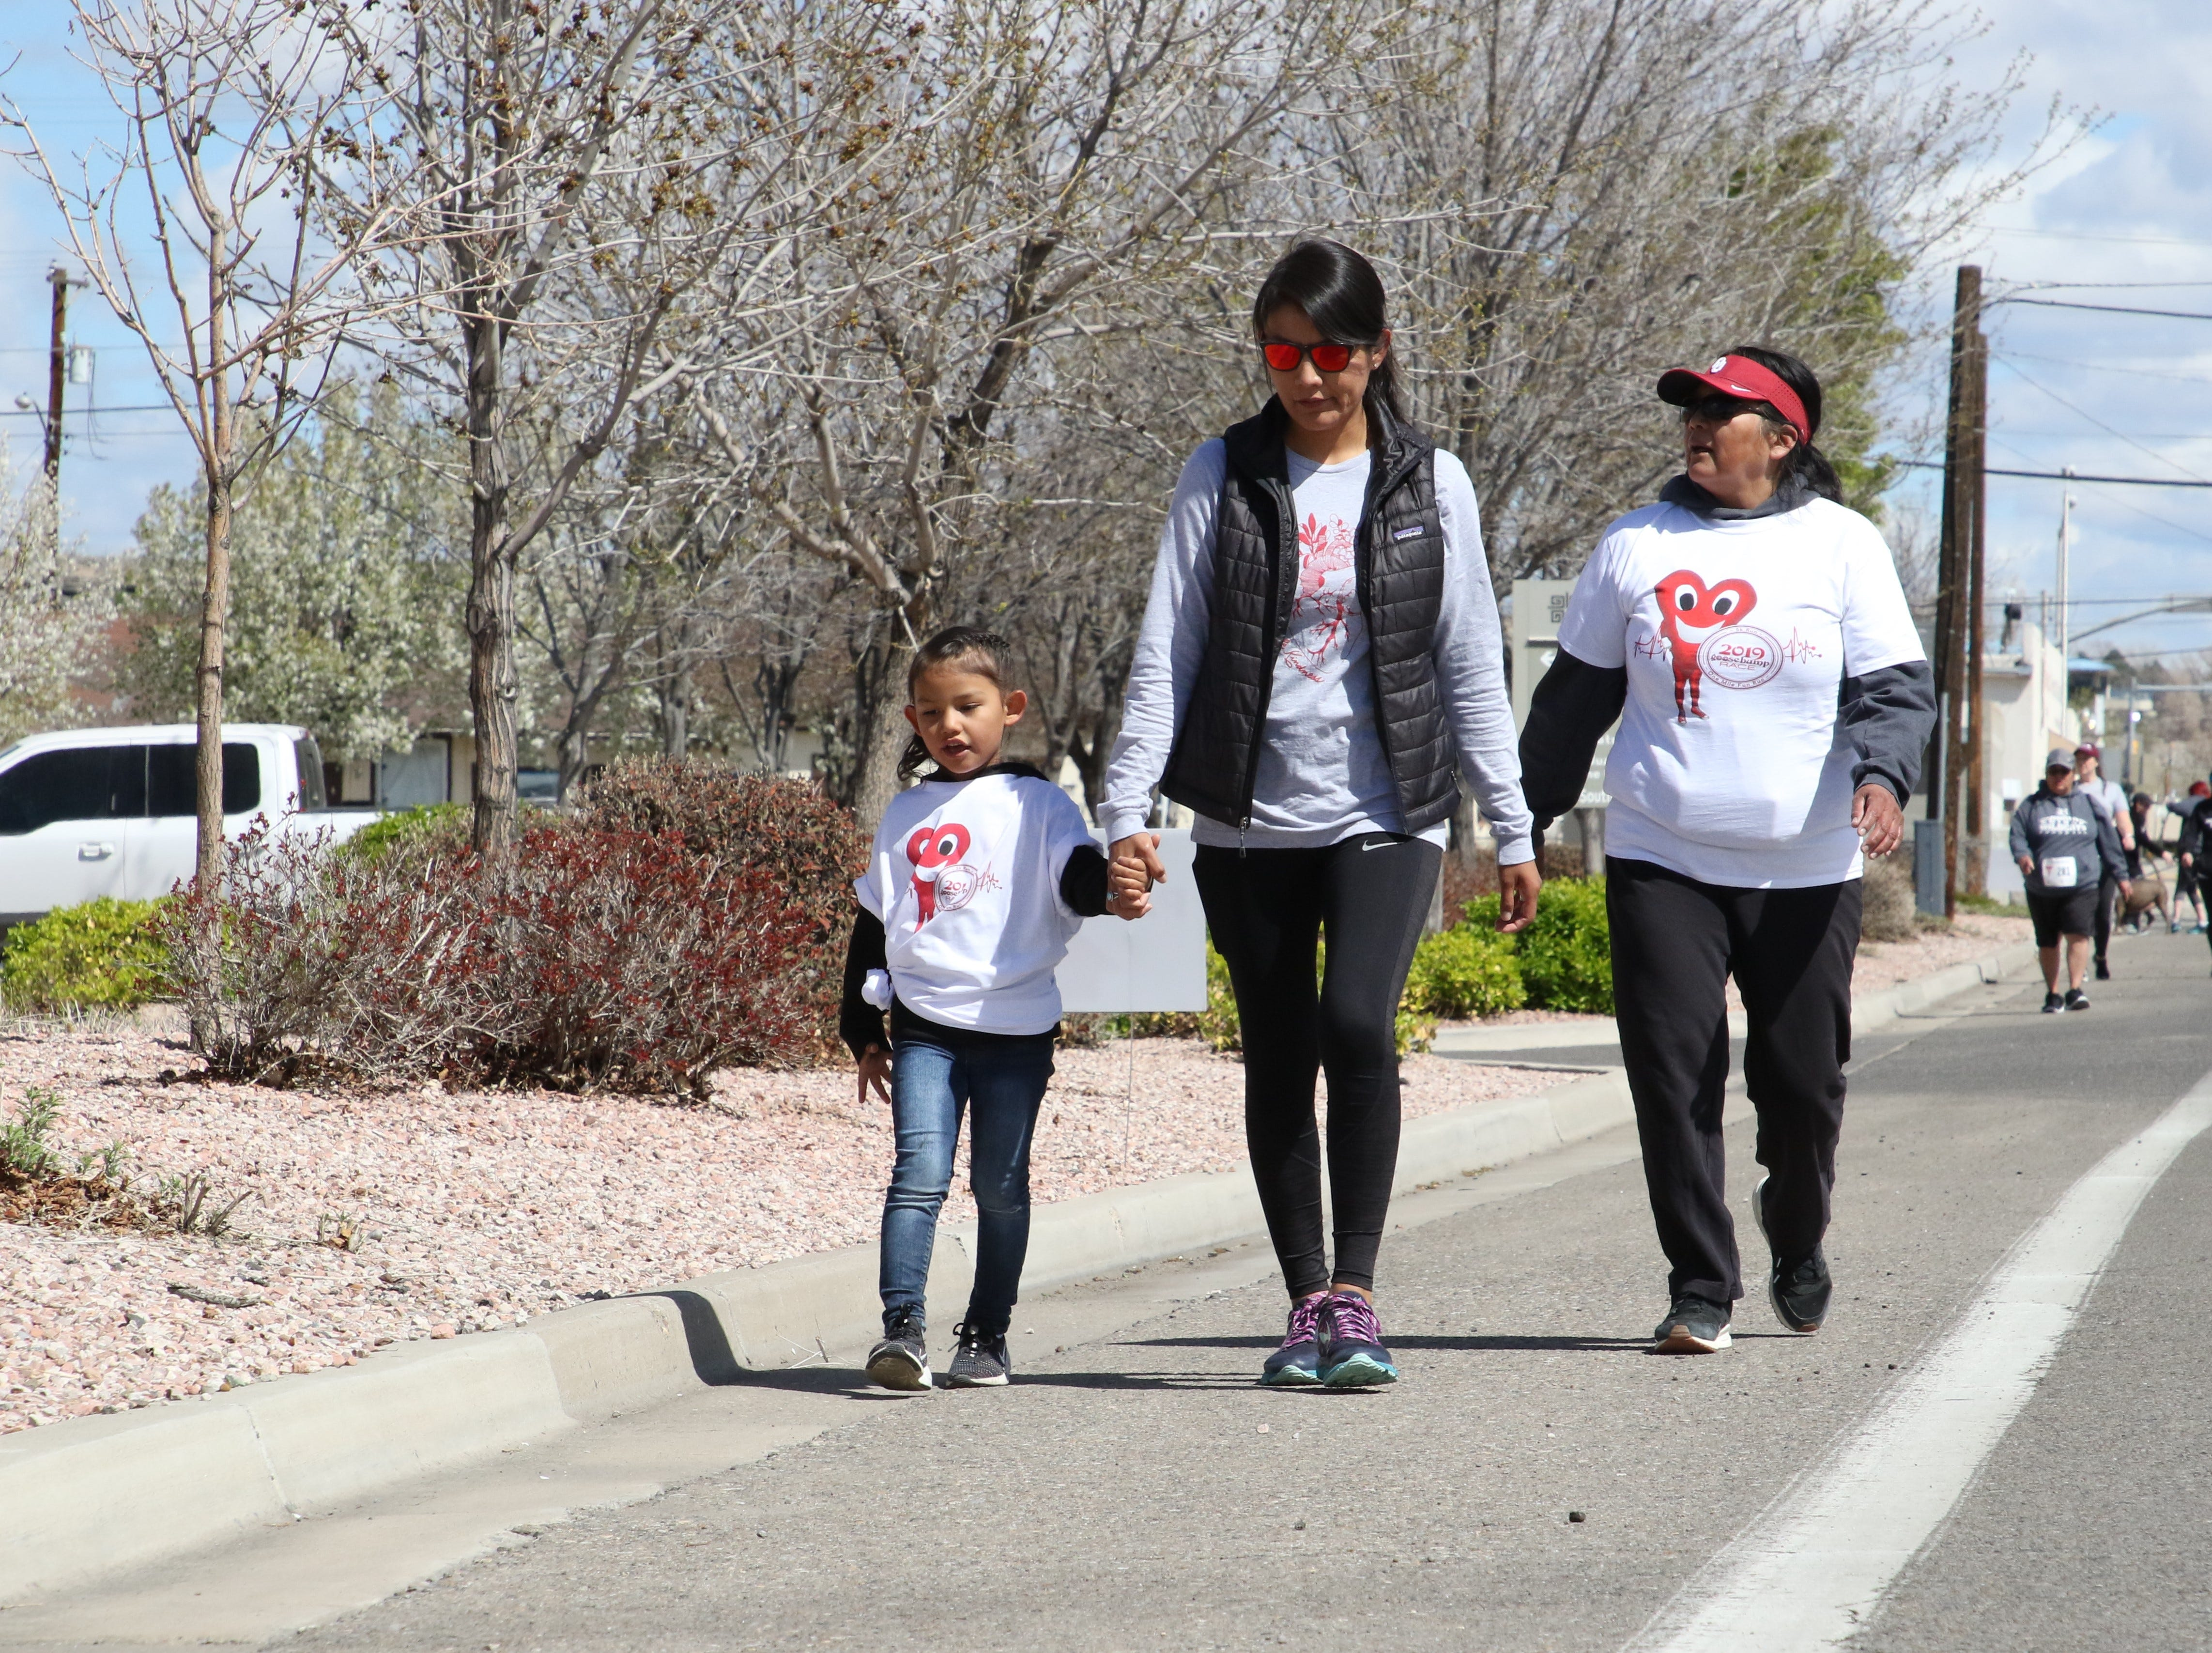 A one-mile fun walk and run was part of the 11th annual A Fair of the Heart and Goosebump Race on Saturday in Farmington.